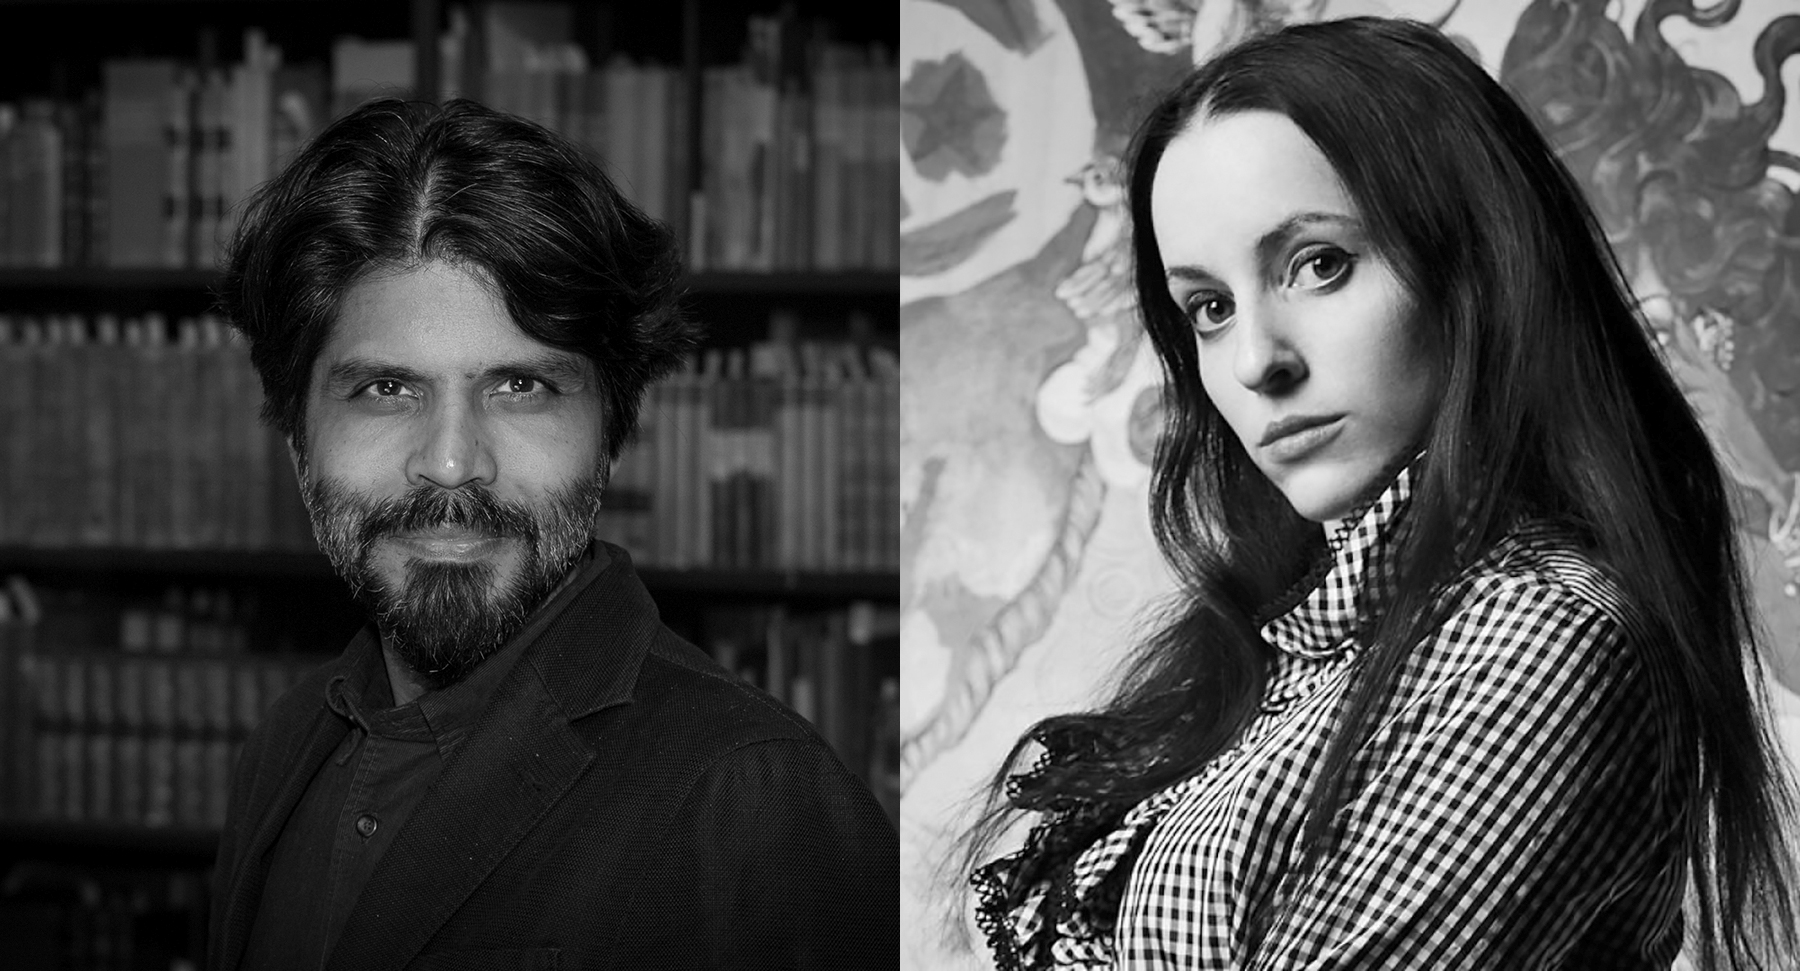 Pankraj Mishra and Molly Crabapple